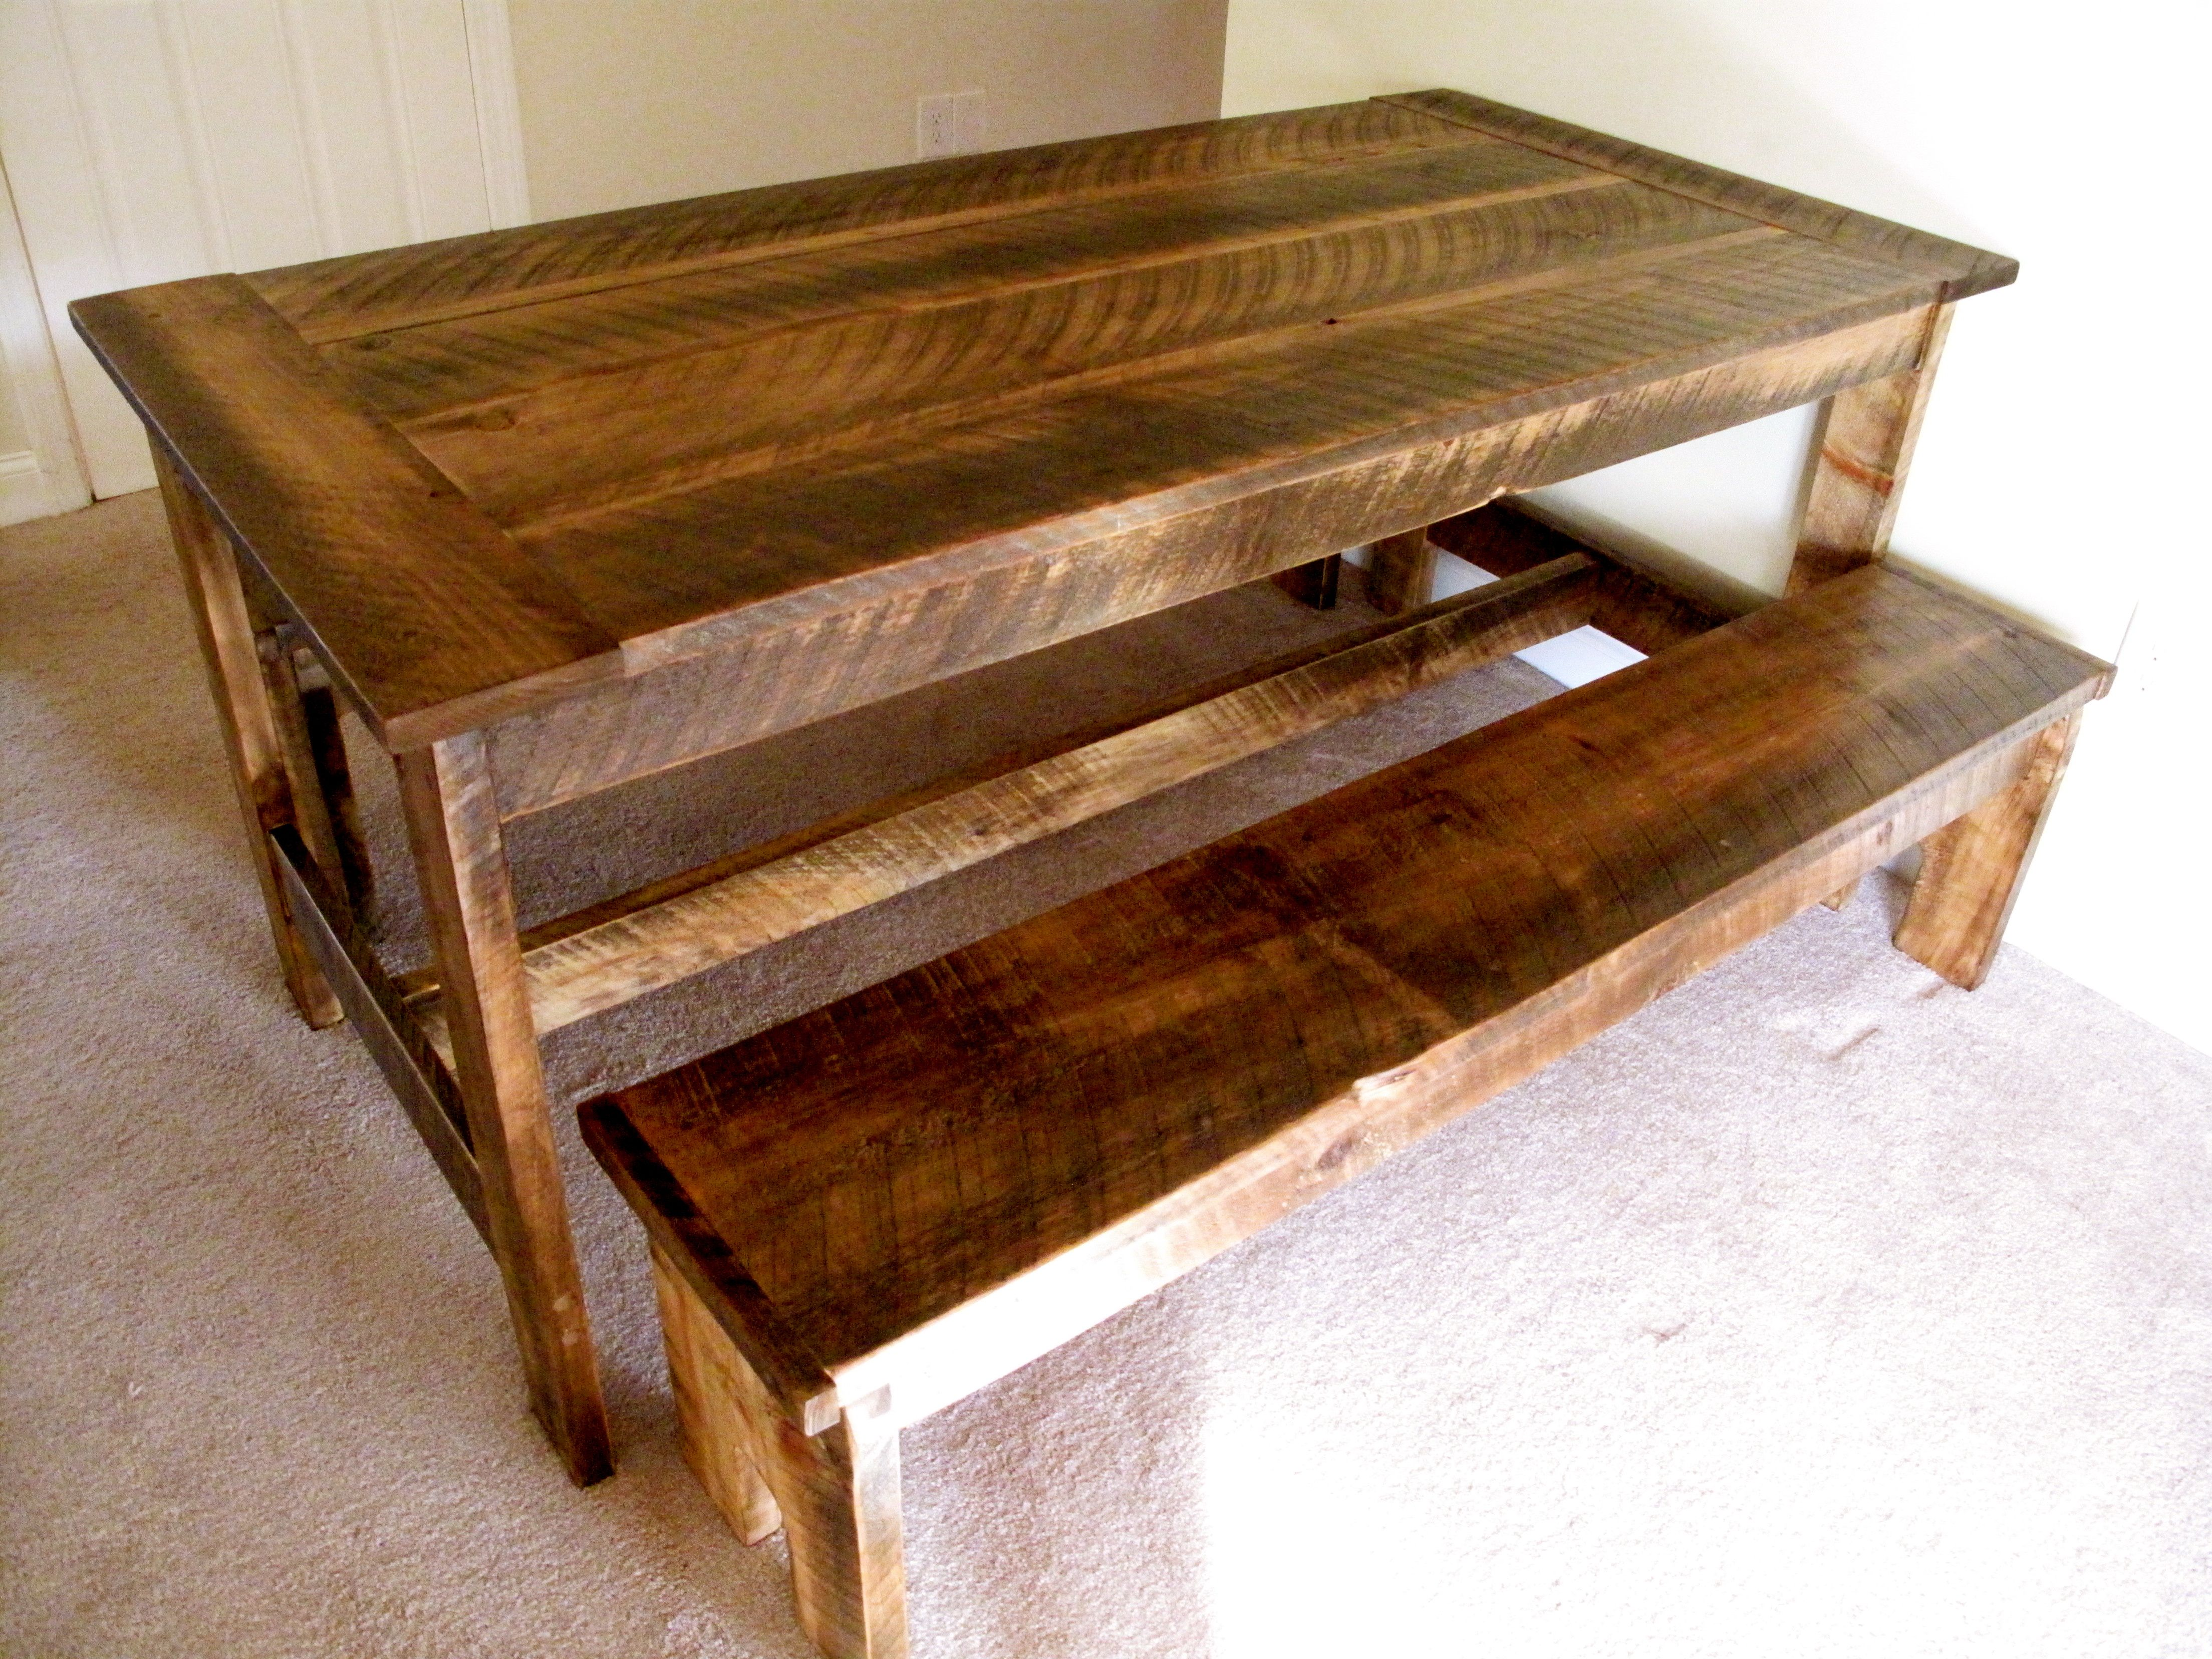 image creative rustic furniture. Rustic Farmhouse Nesting Table. Quality, Handcrafted Furniture With Creative Character And Charm. Image D